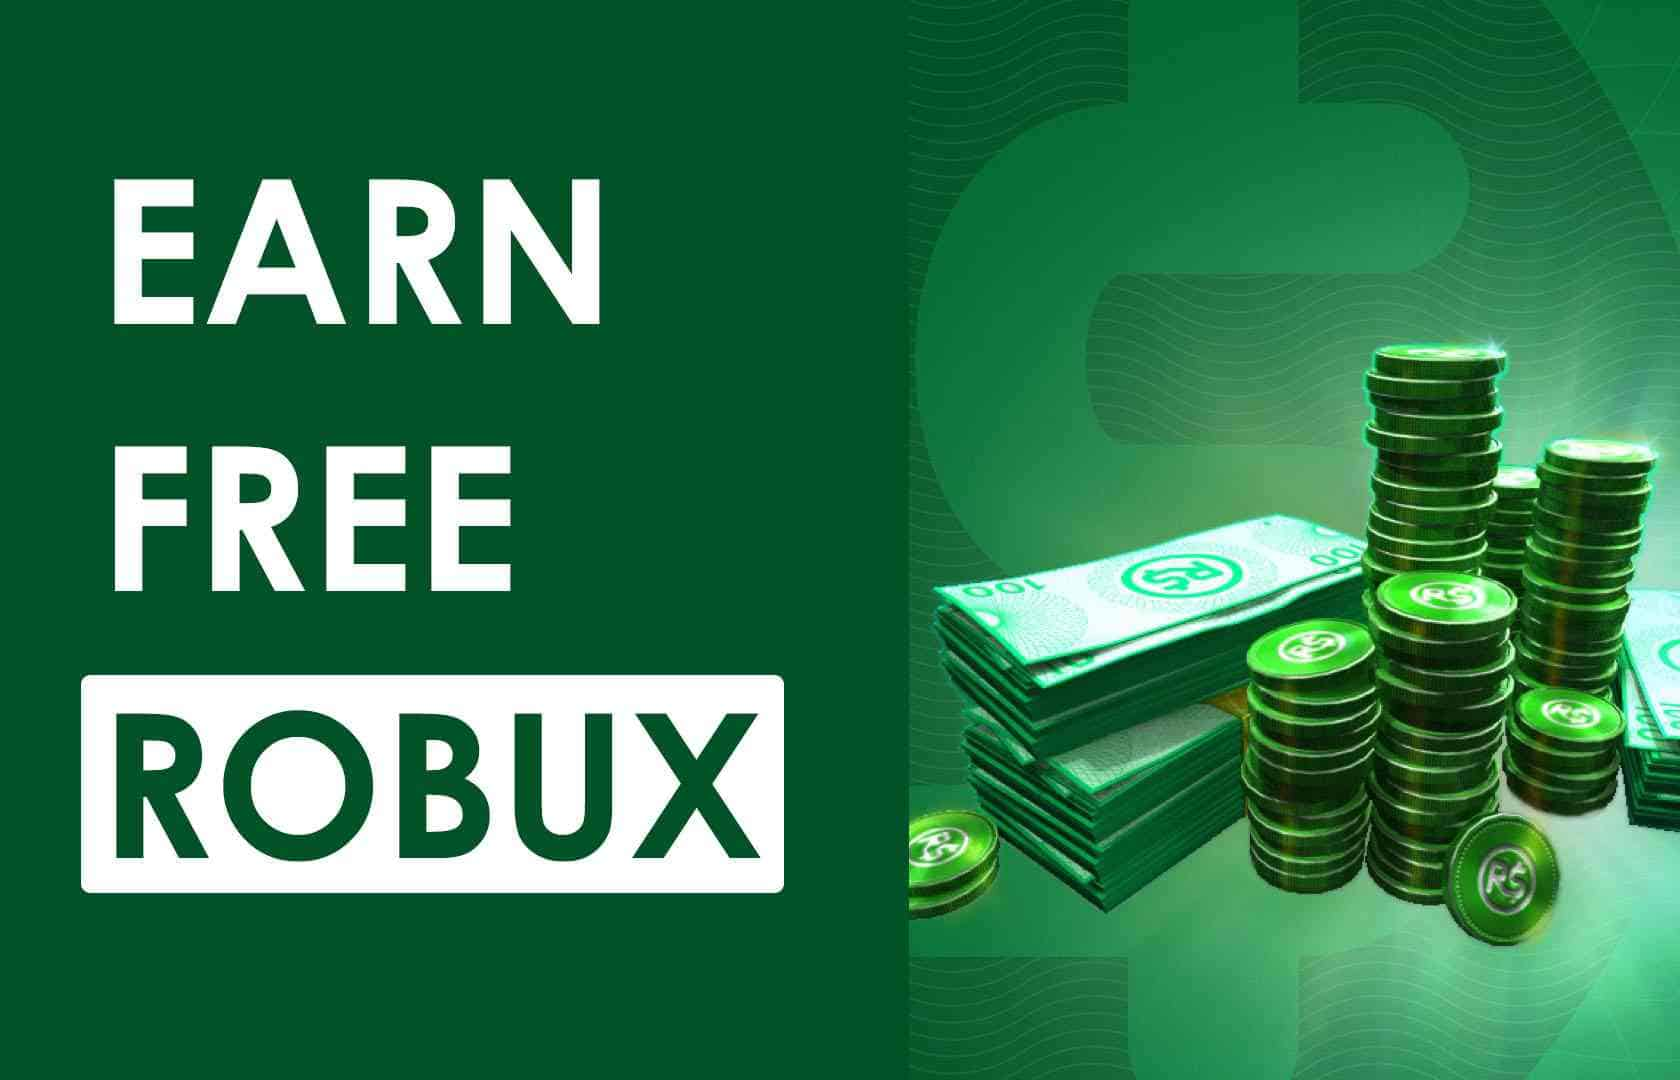 earn robux free 2020 How To Earn Free Robux In 2020 Laptrinhx